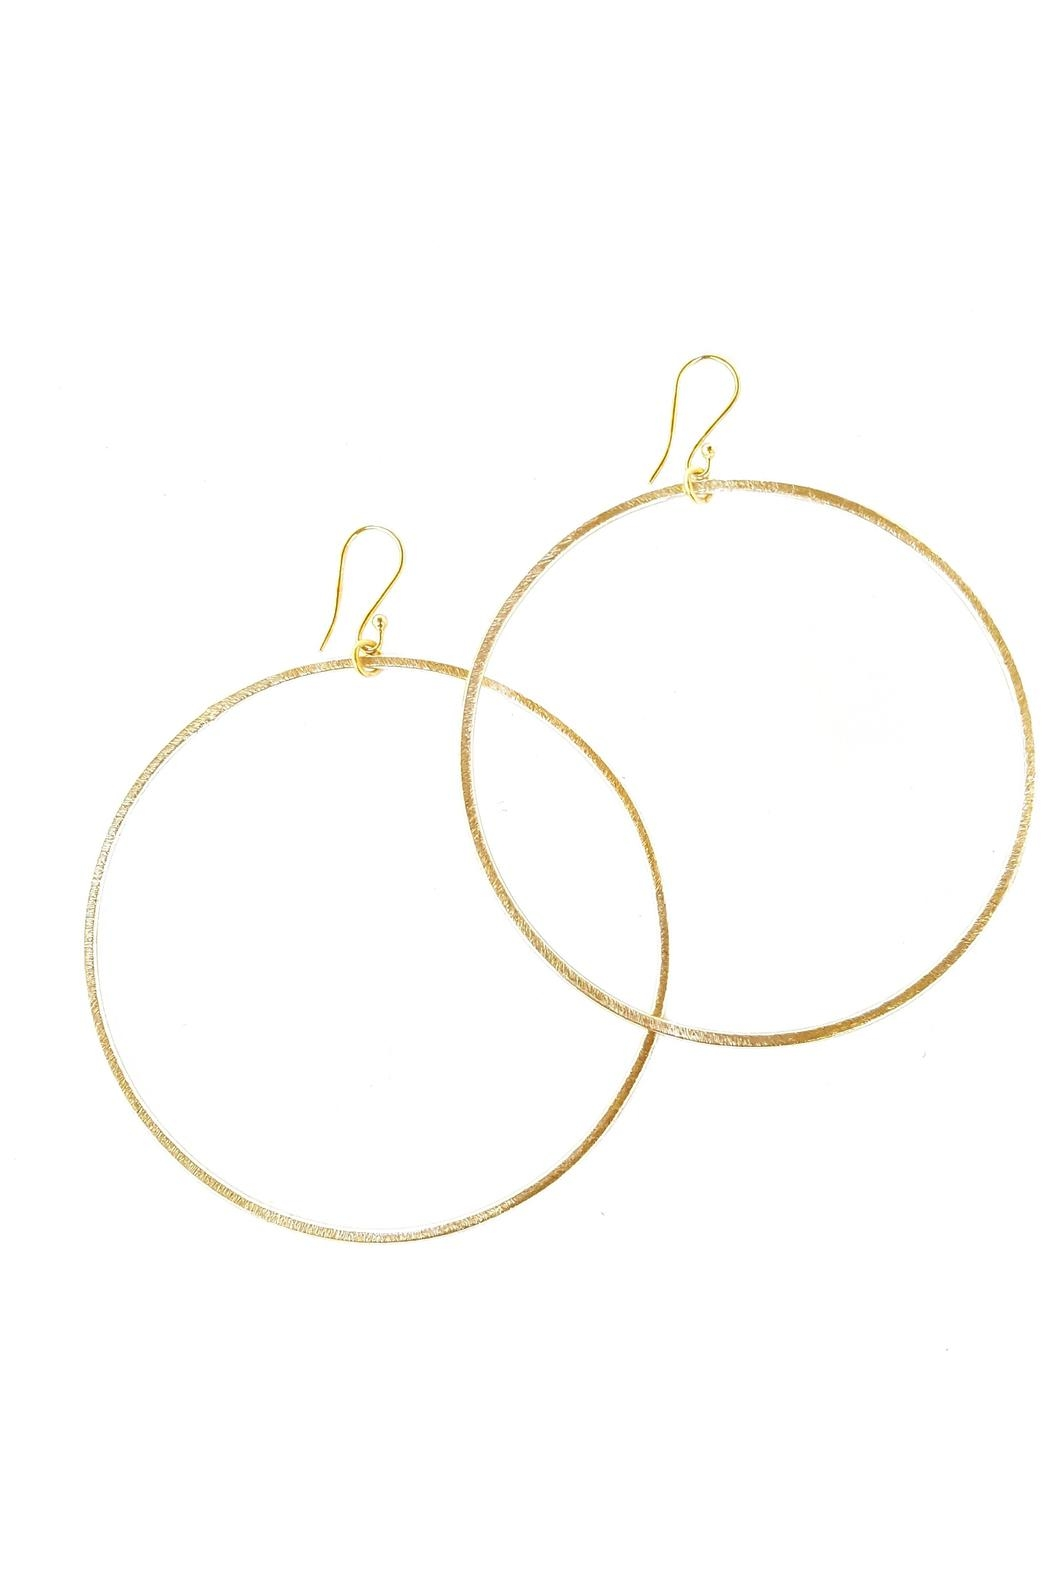 Fabulina Designs Gold Hoop Earrings - Main Image